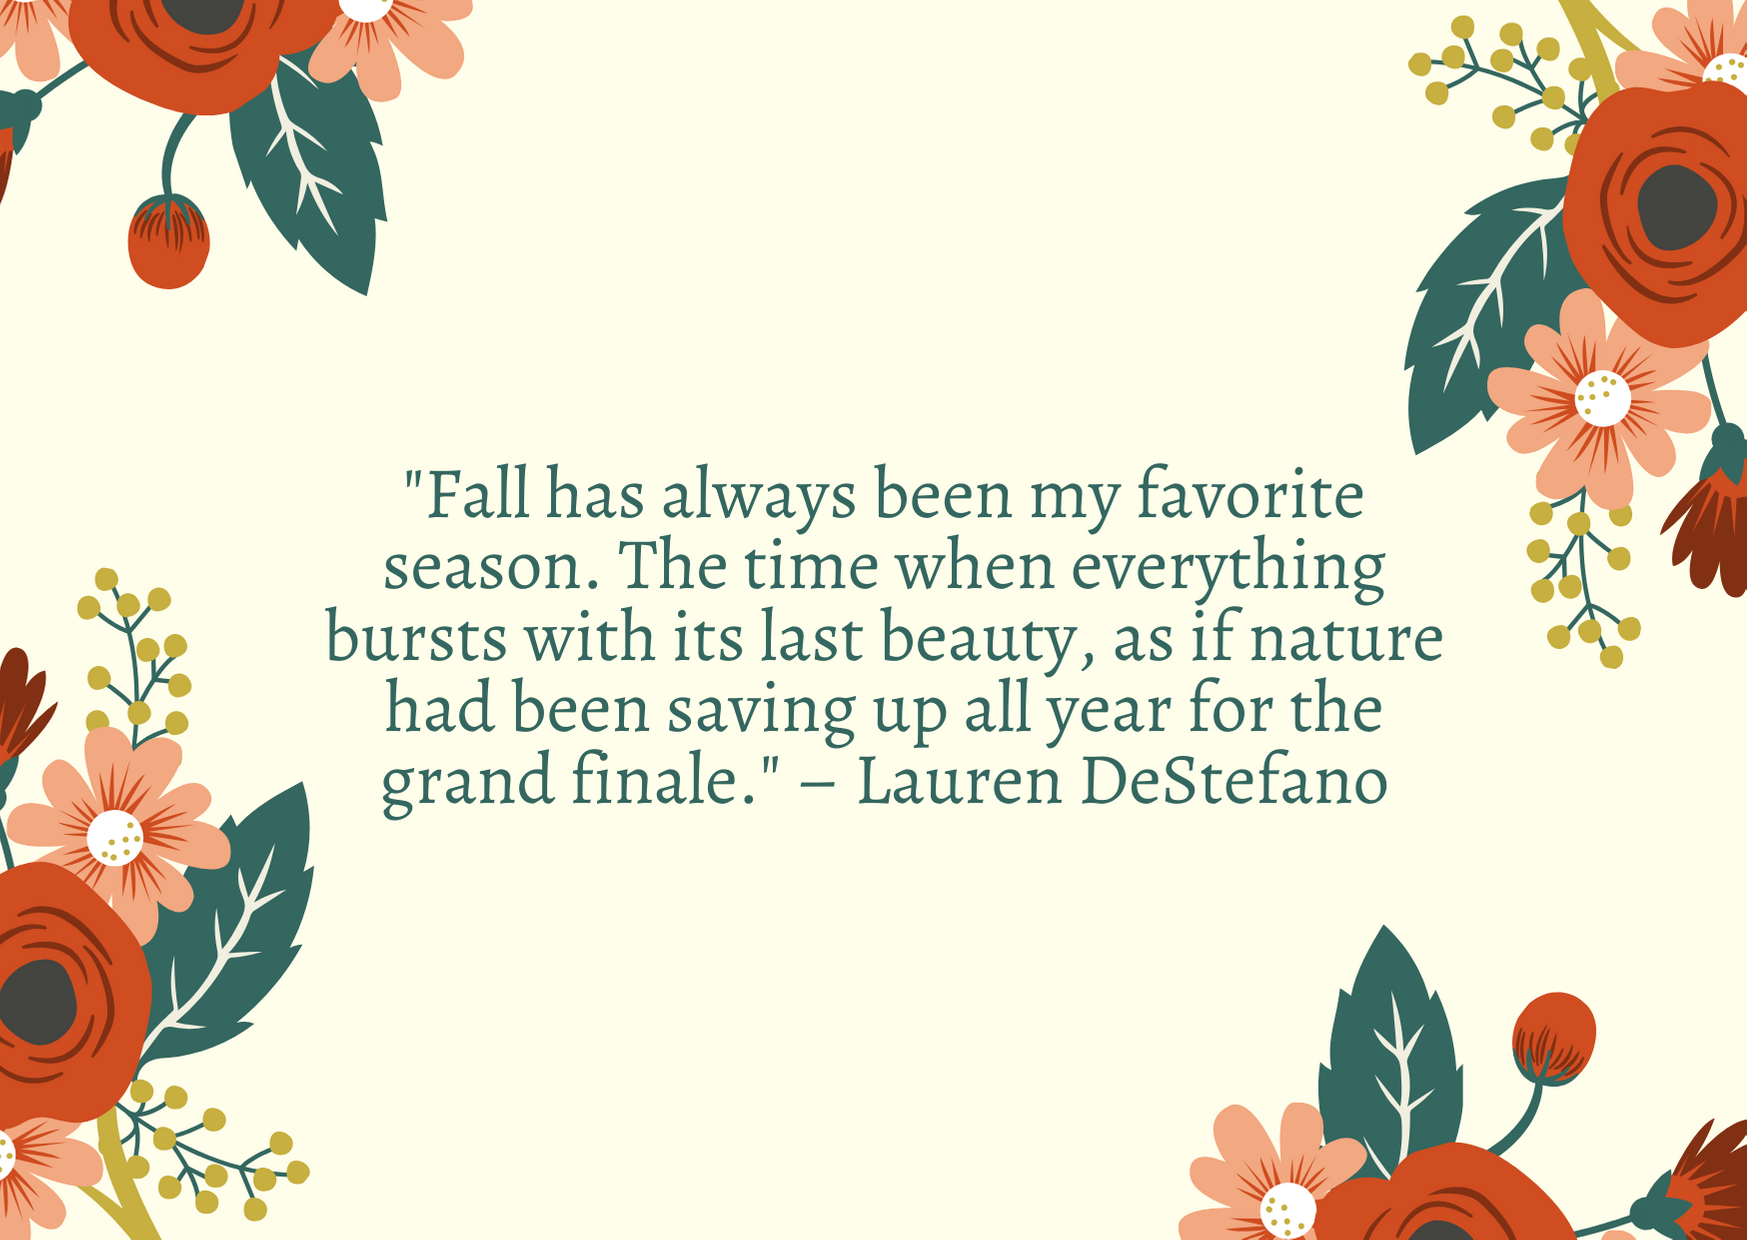 """Fall has always been my favorite season. The time when everything bursts with its last beauty, as if nature had been saving up all year for the grand finale."" – Lauren DeStefano"